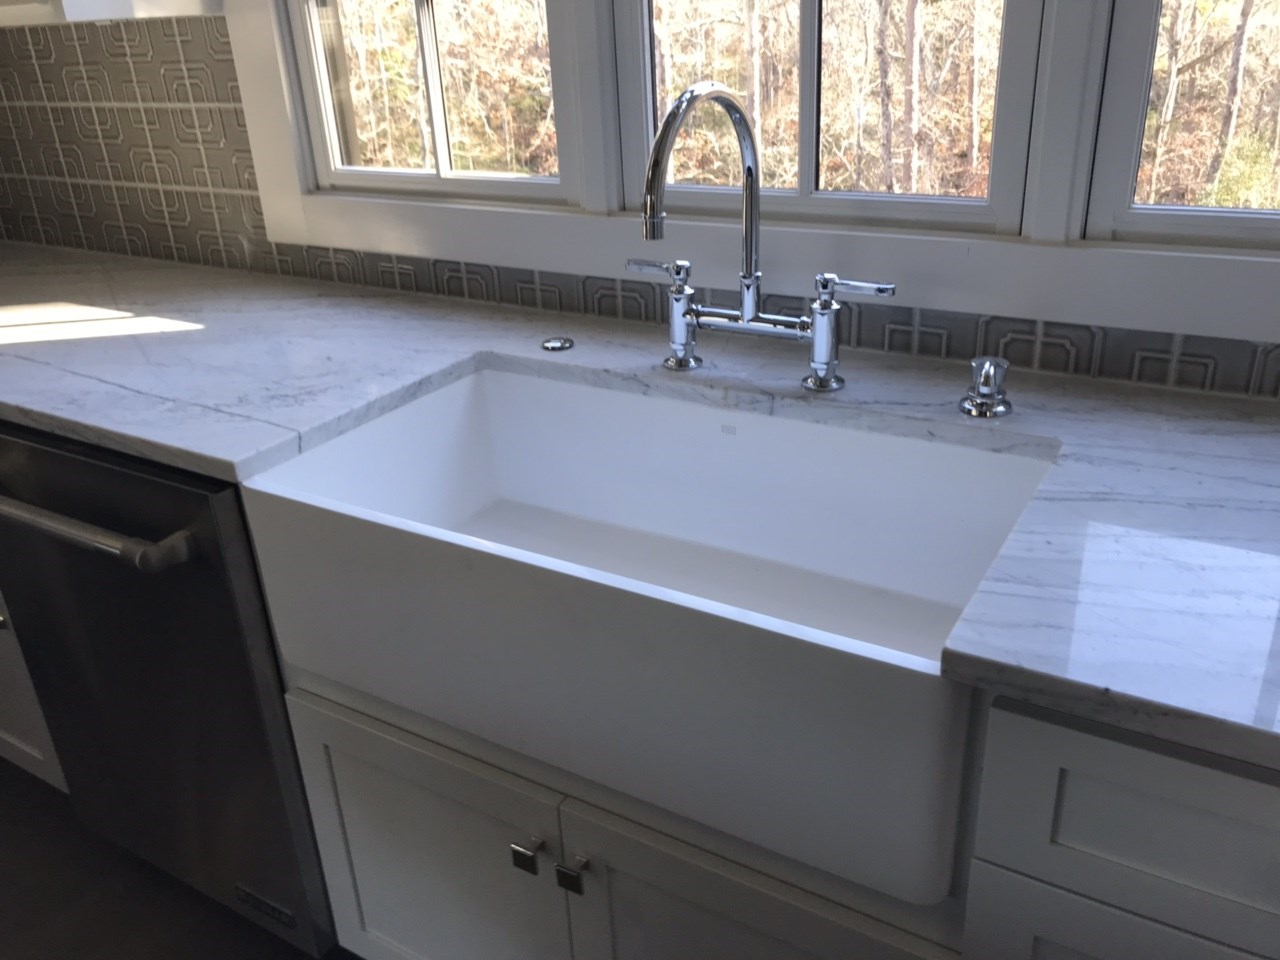 8-apron sink with bridge faucet